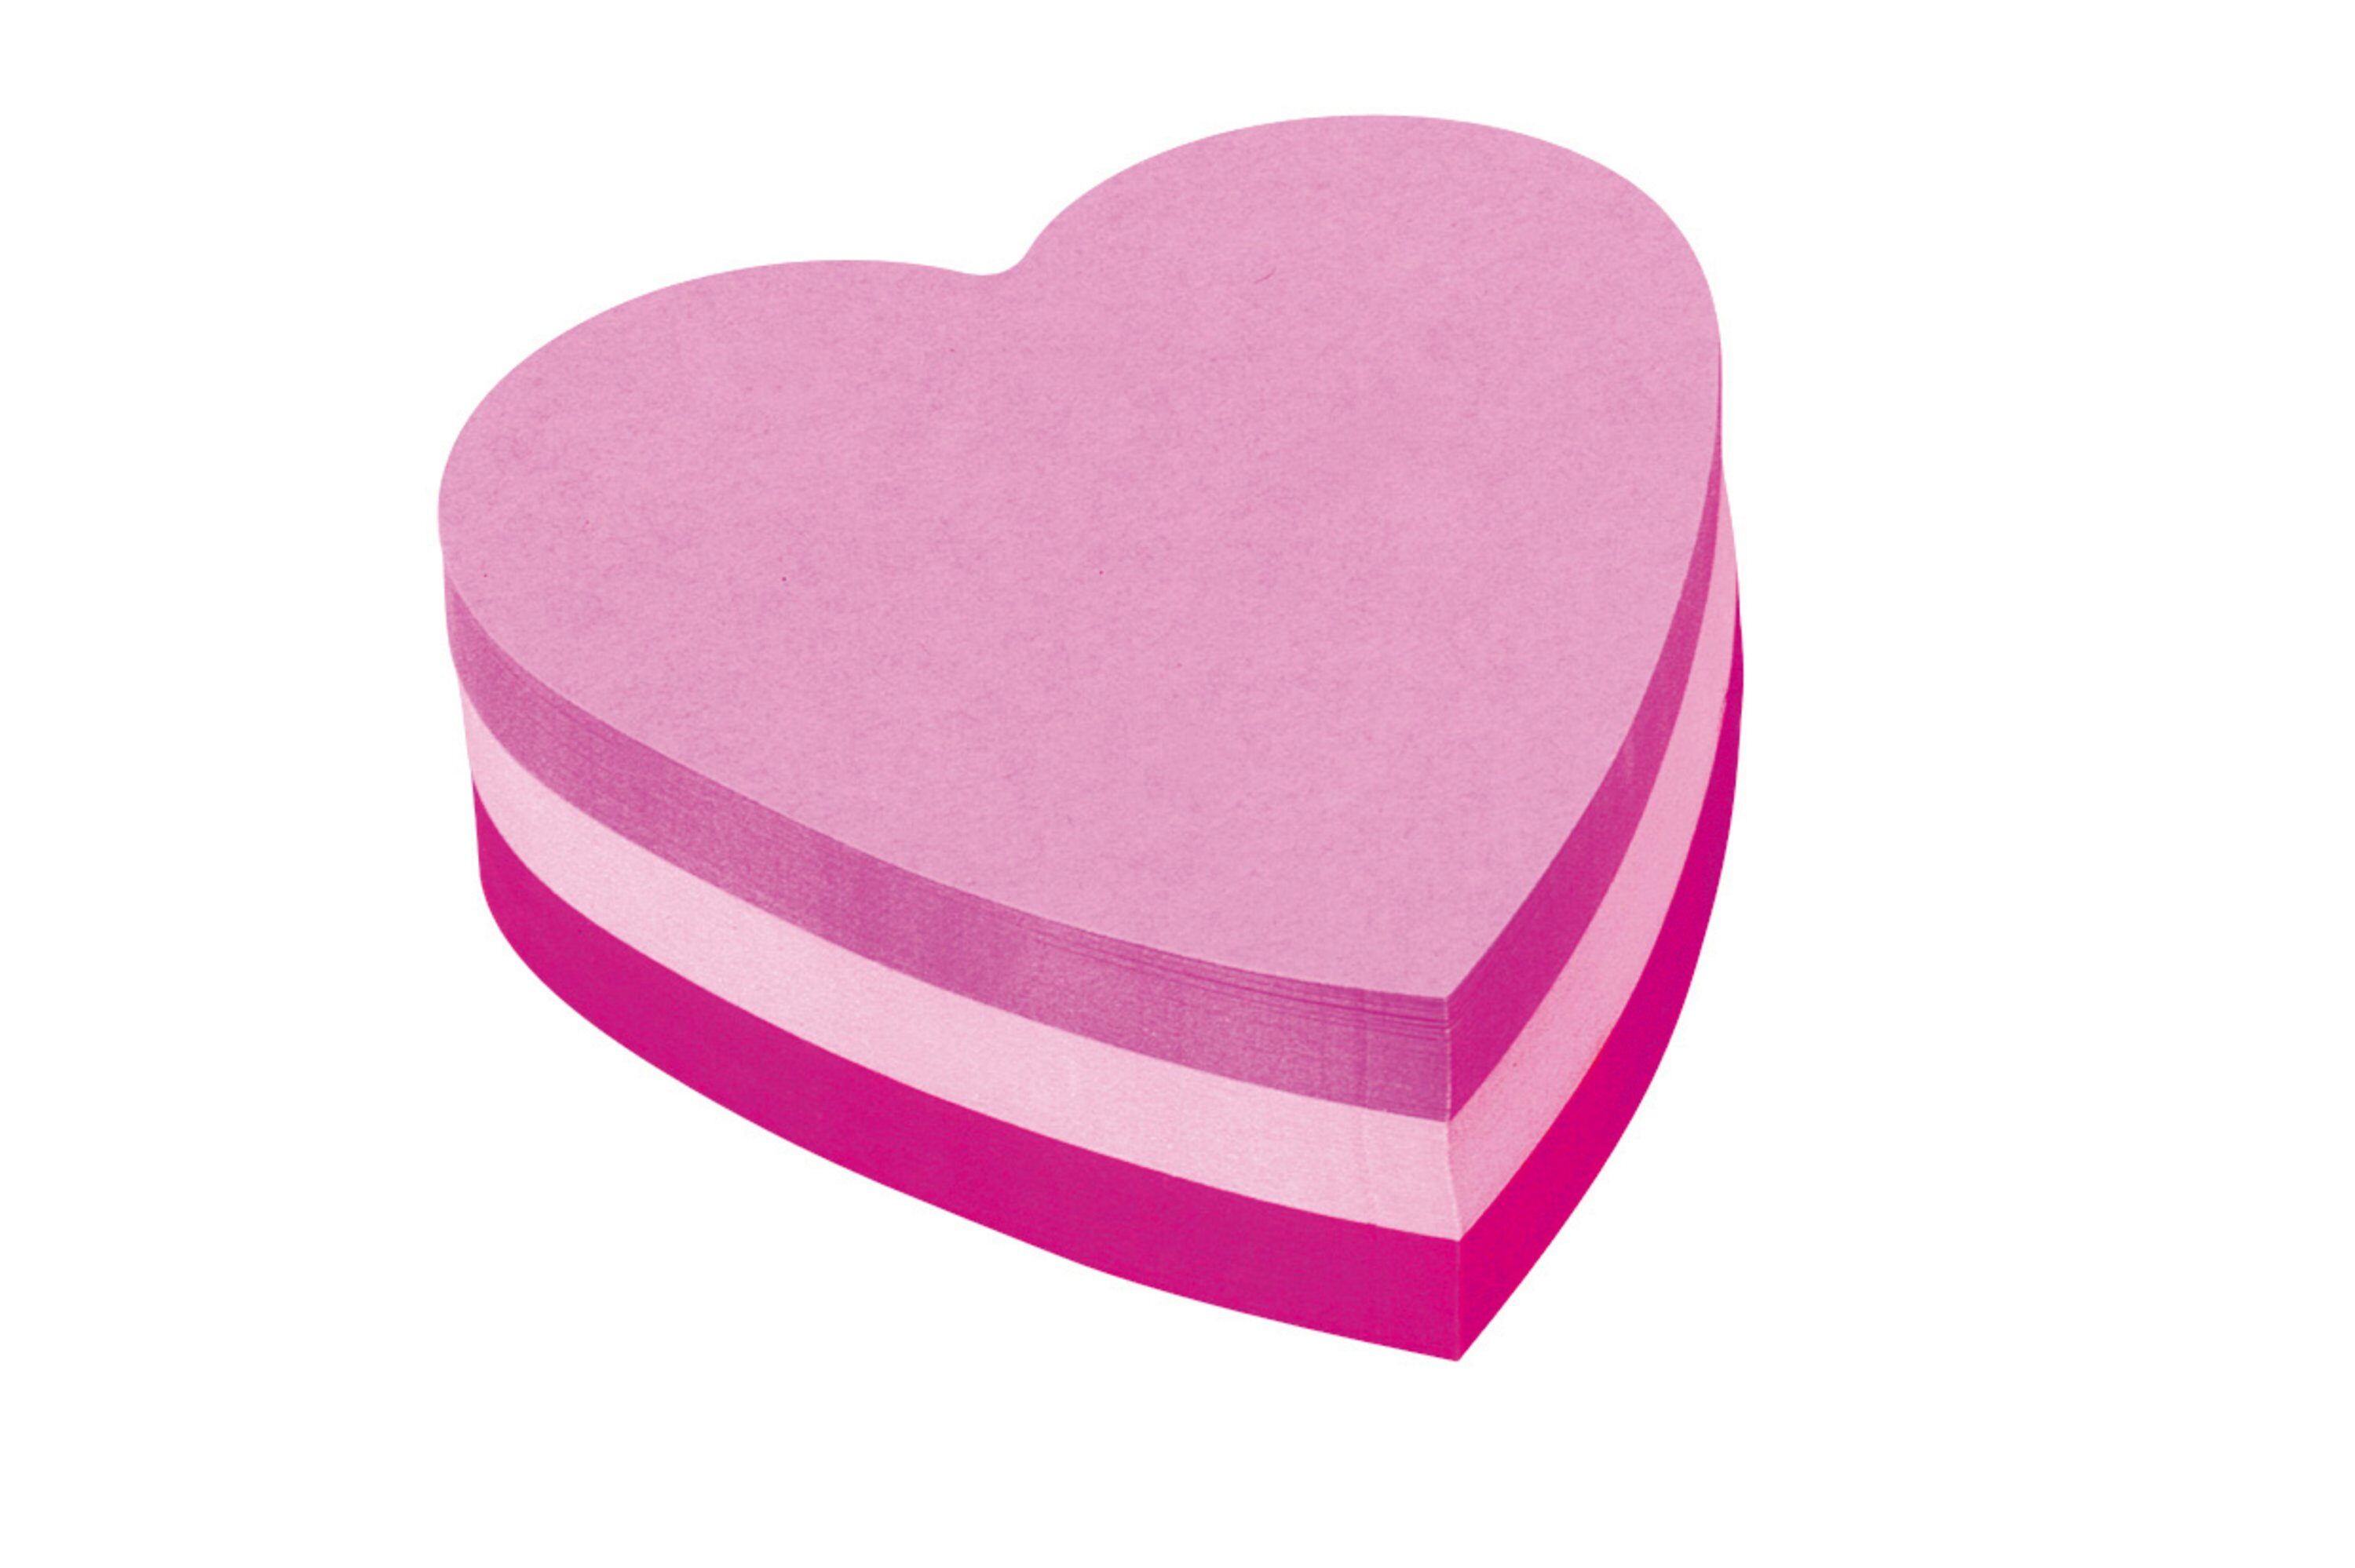 Shapes Post-it Heart Shaped Block Pad 70x70mm Pink 2007H